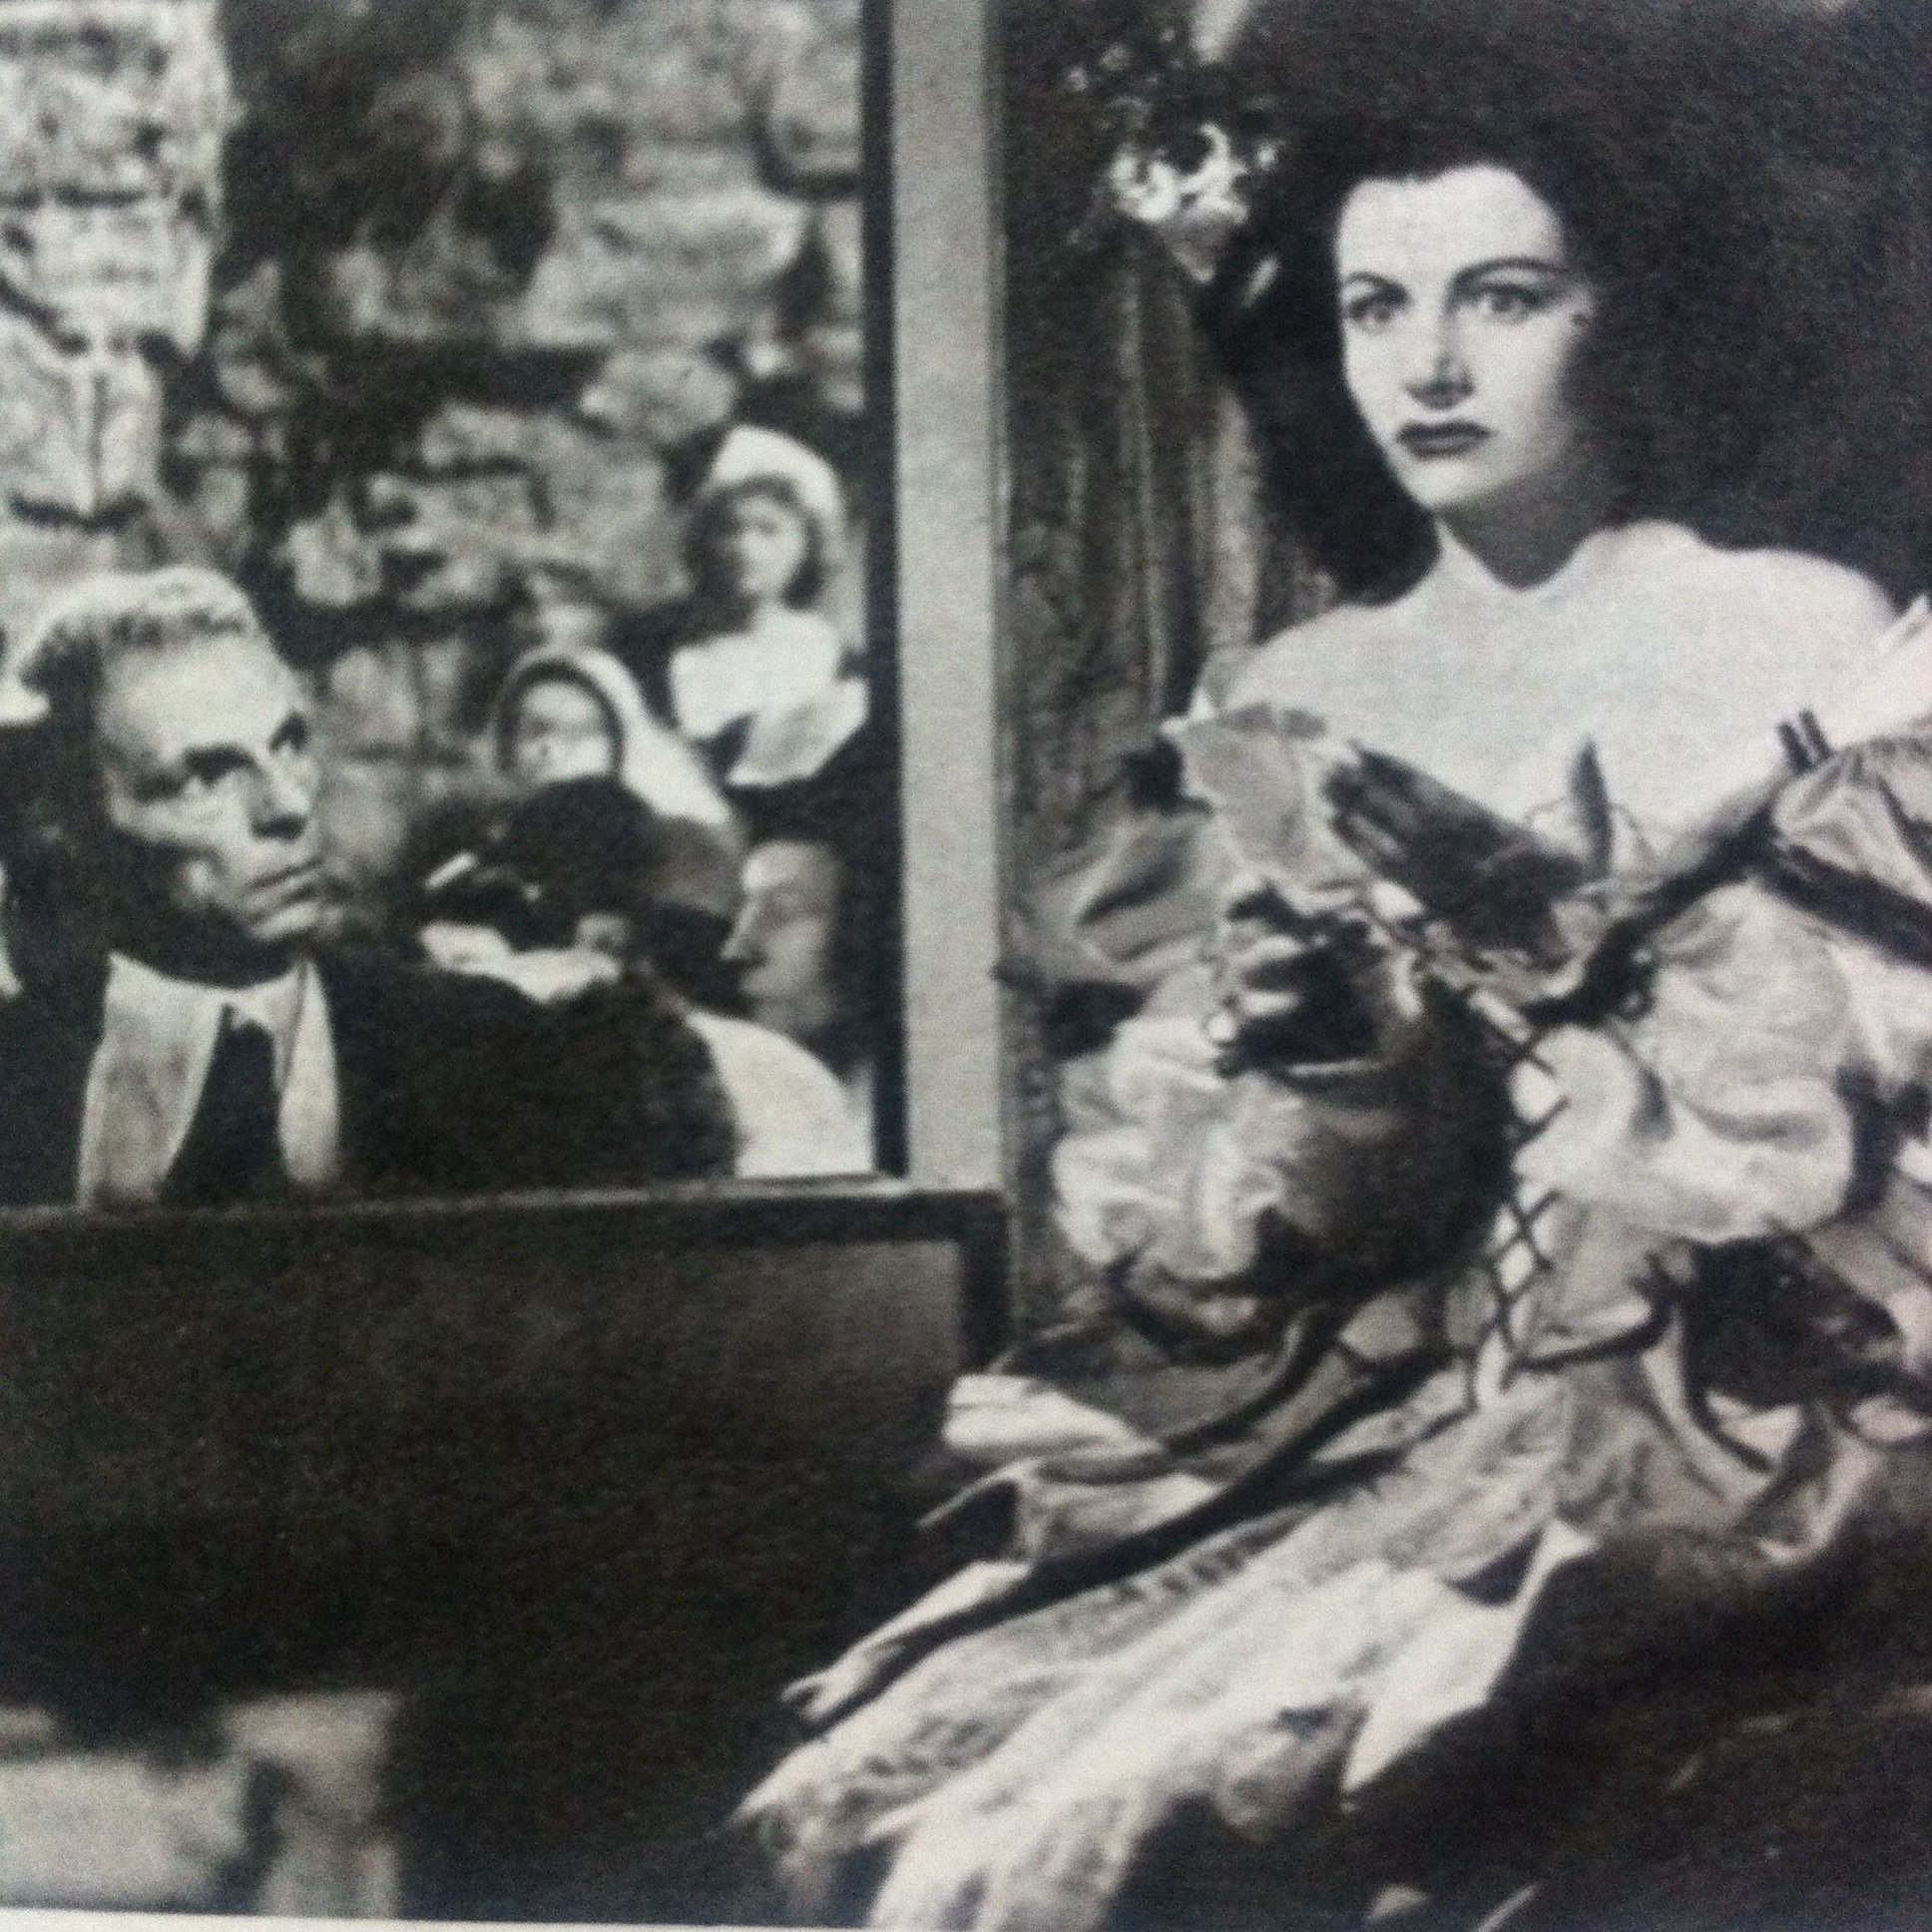 Ivor Barnard and Margaret Lockwood in The Wicked Lady (1945)